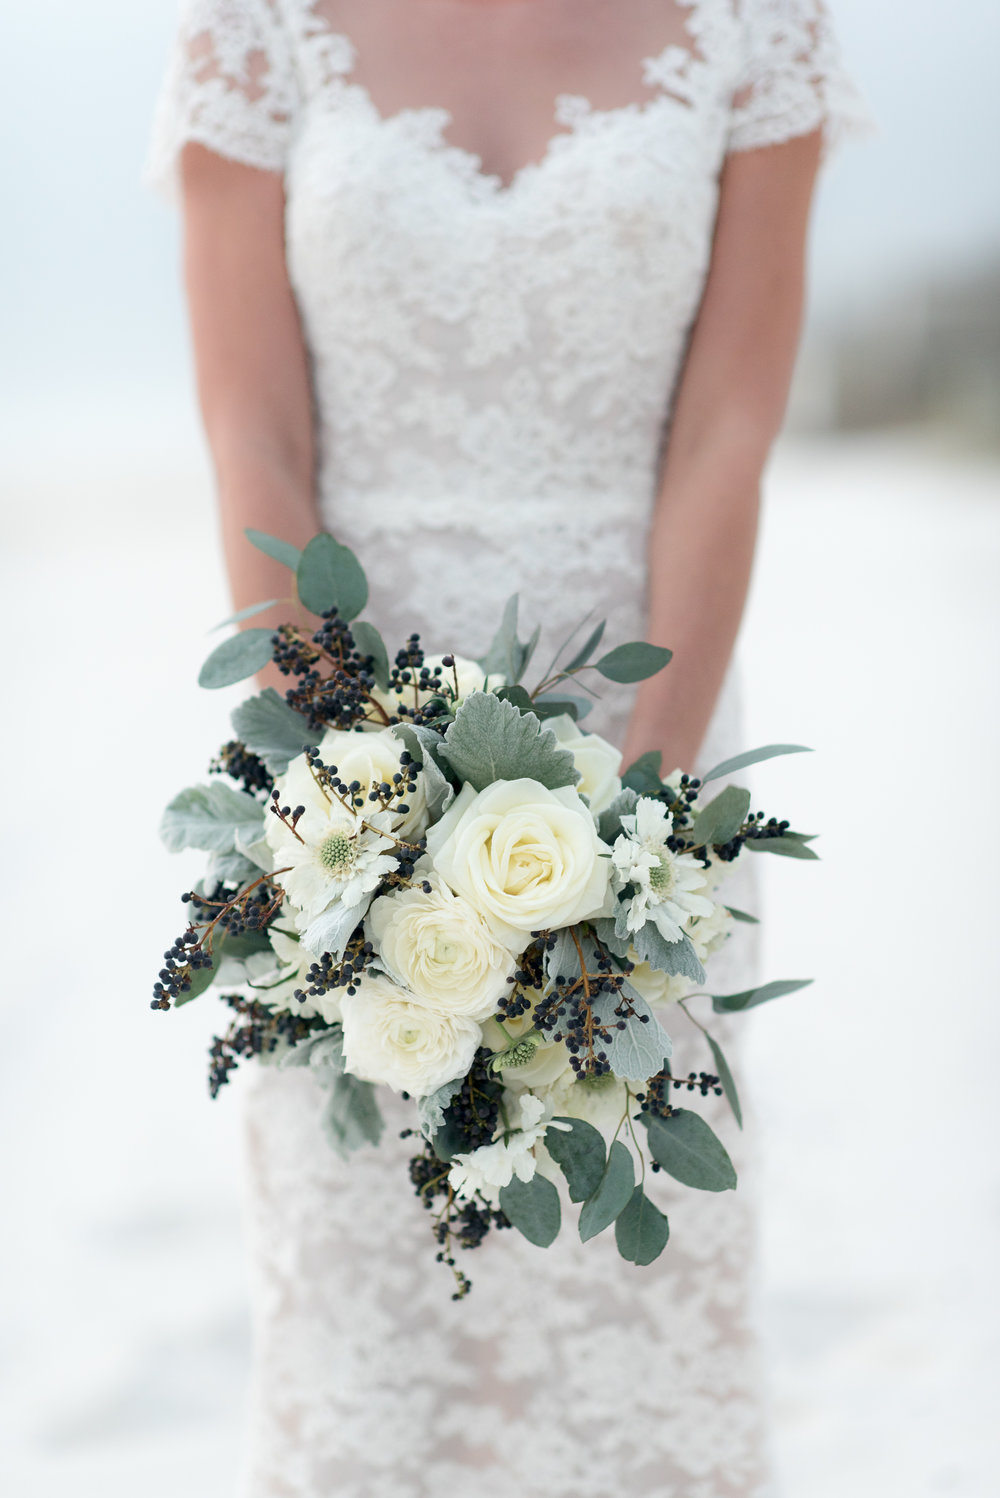 Detail image of Rosemary Beach bride's flower bouquet.